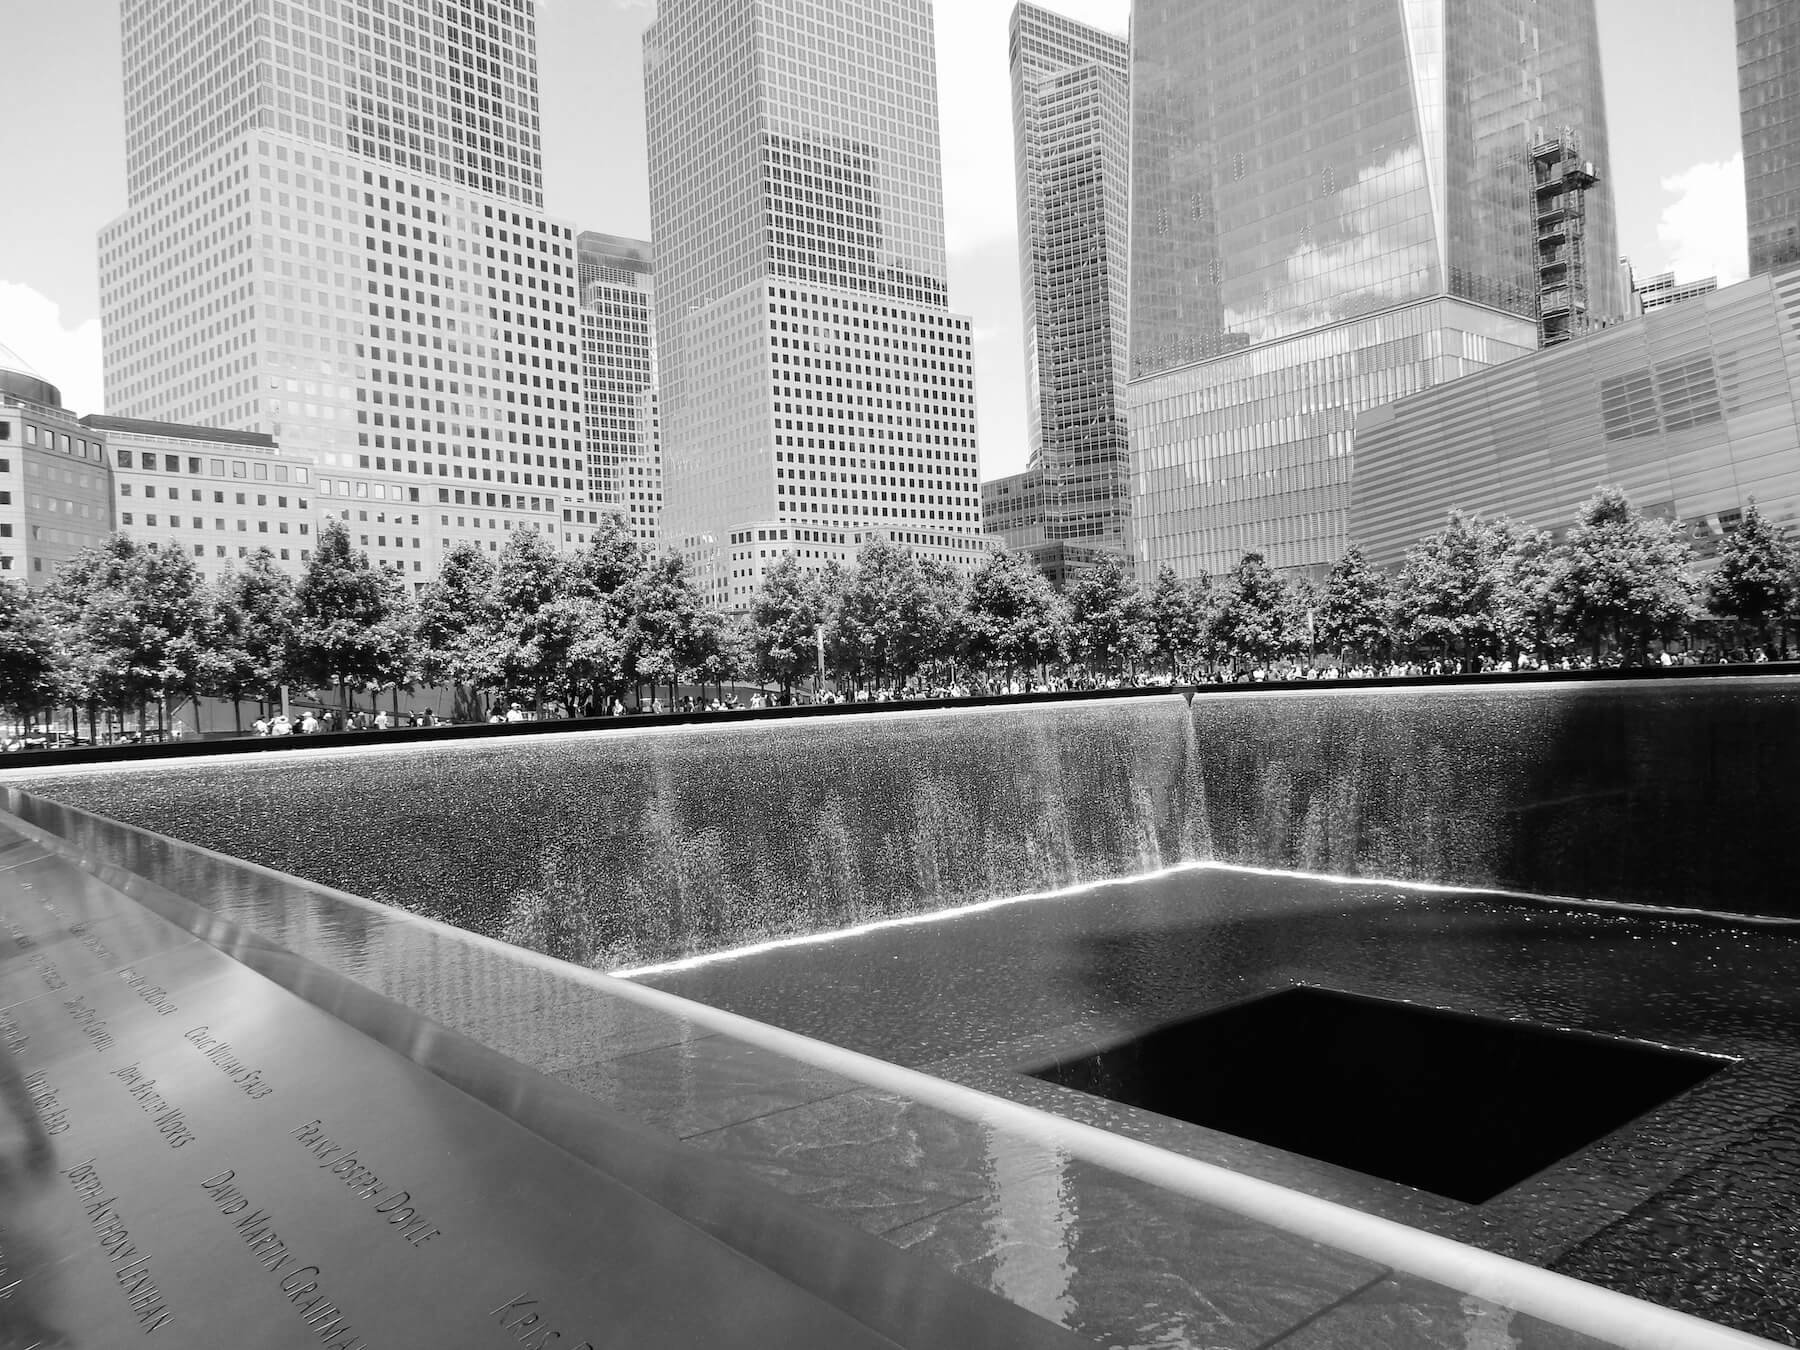 9/11 Memorial, etched names